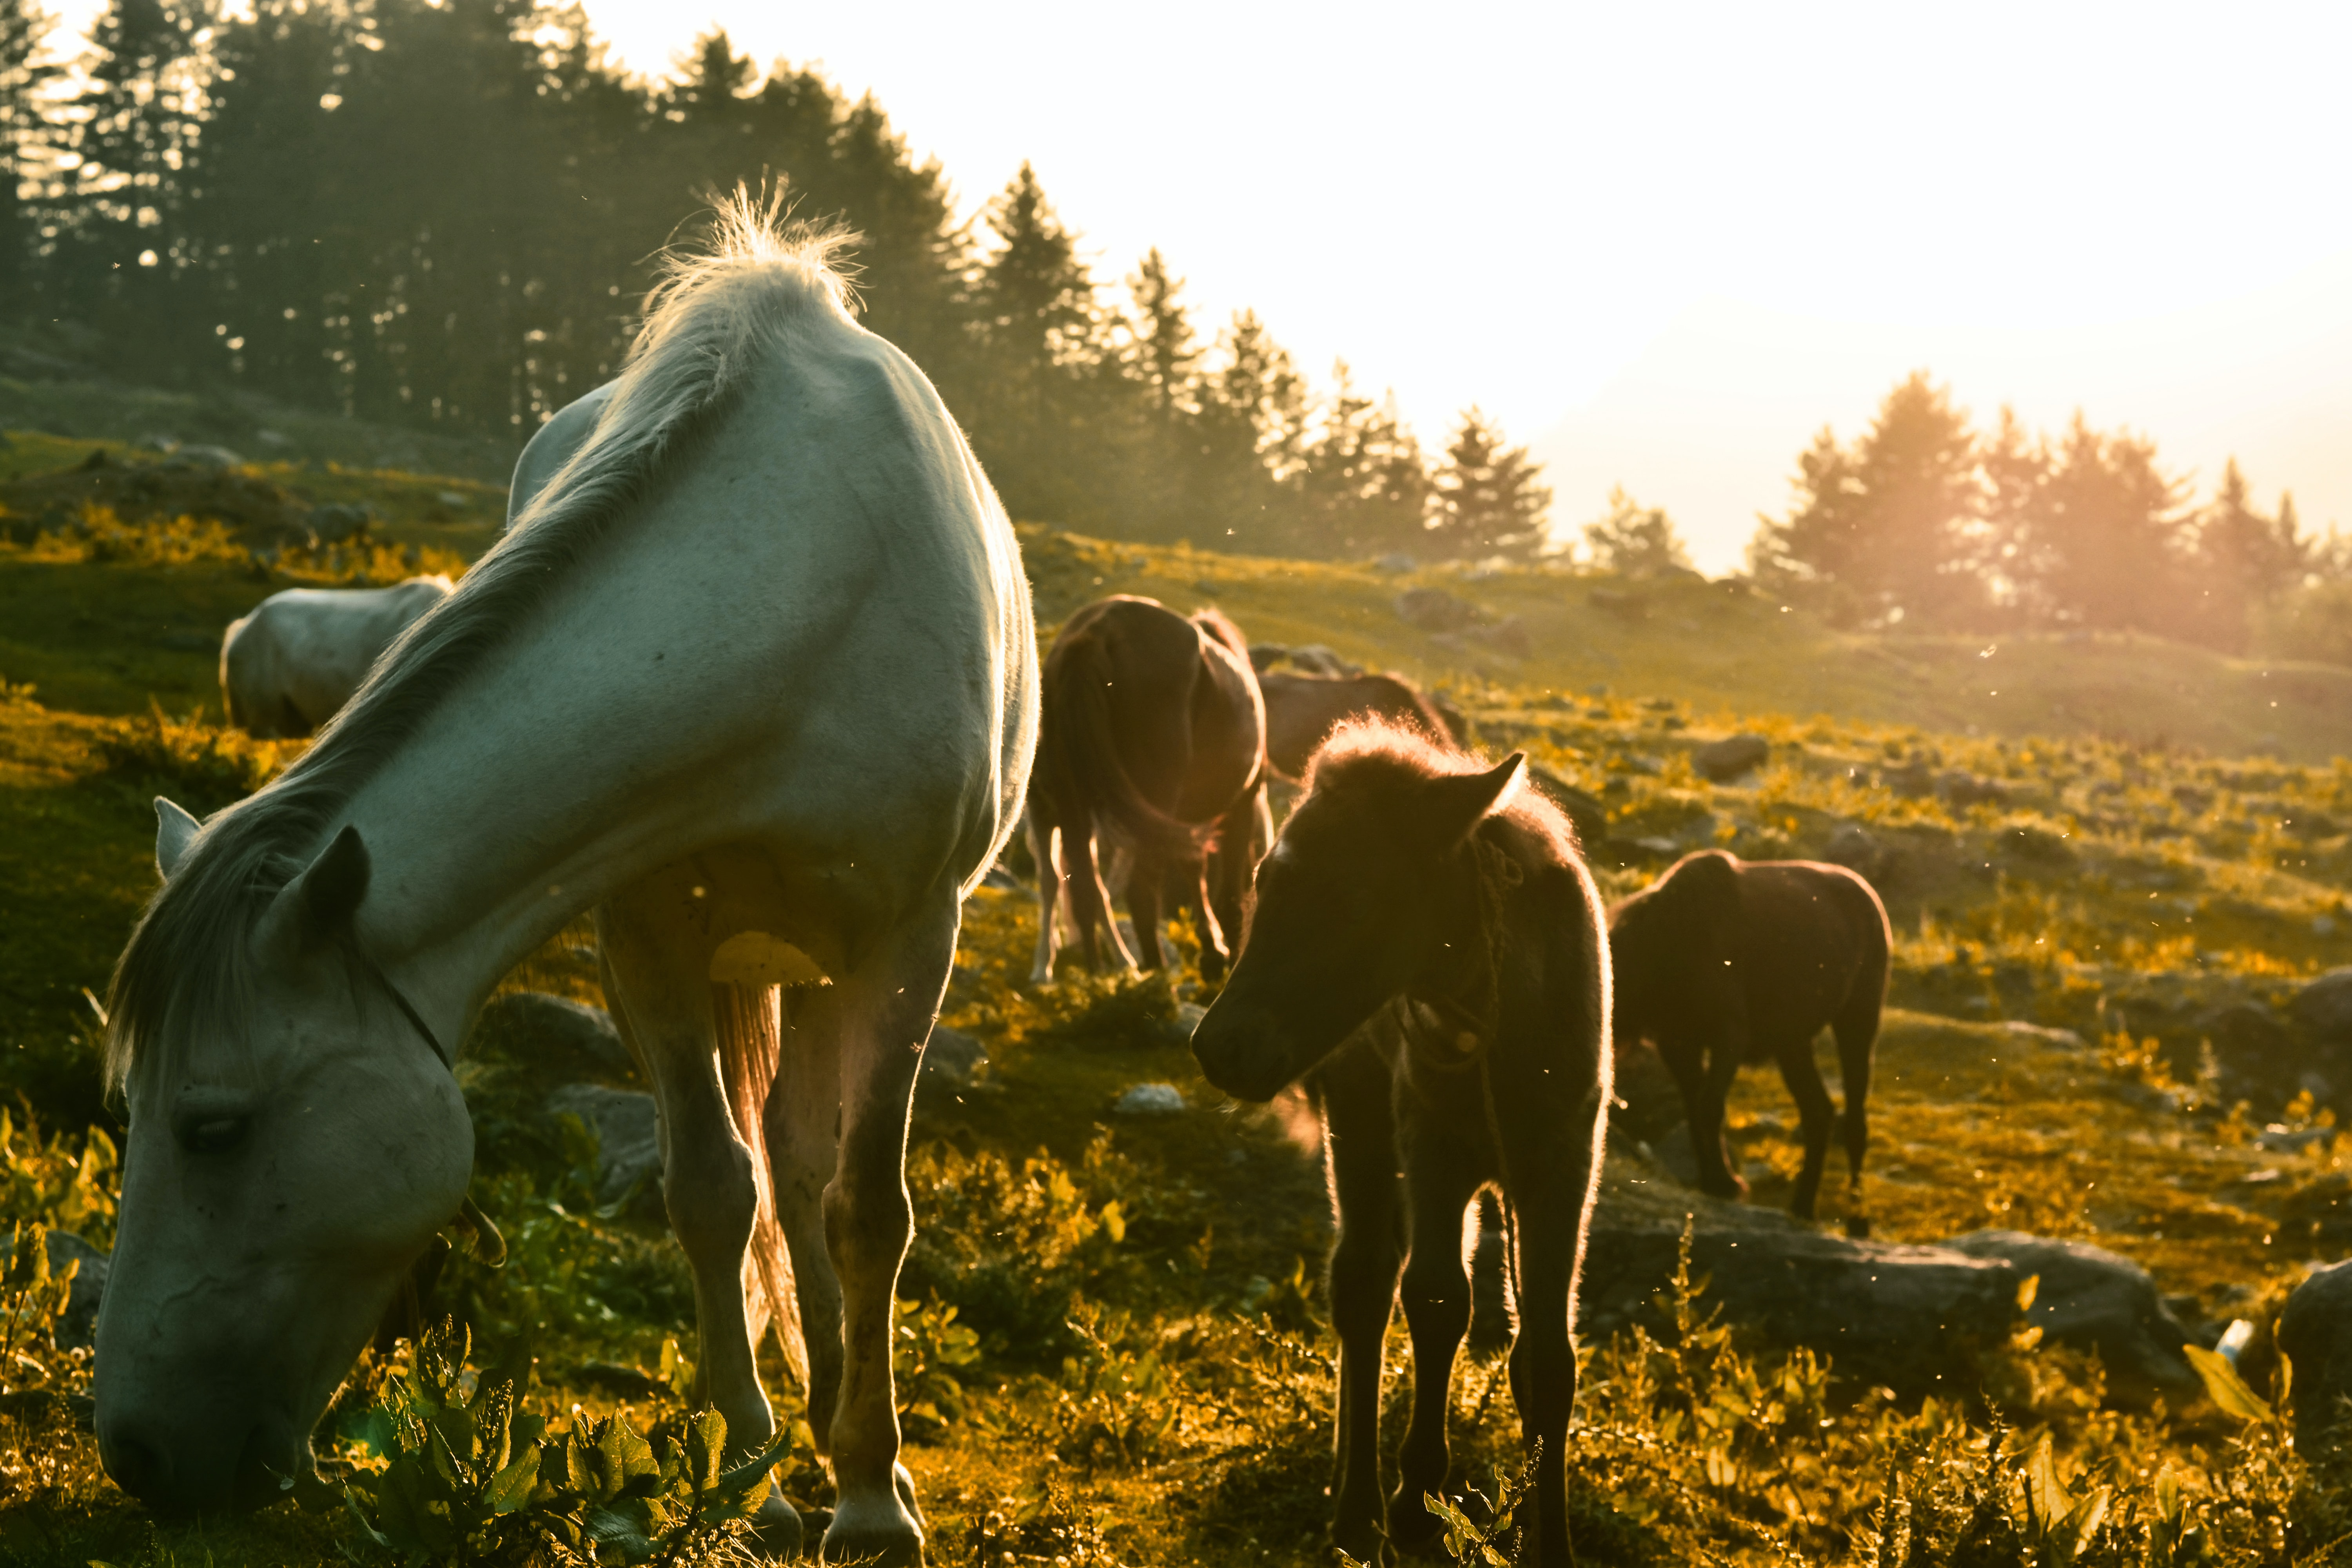 Adult horses and ponies grazing on a rocky slope in direct sunlight